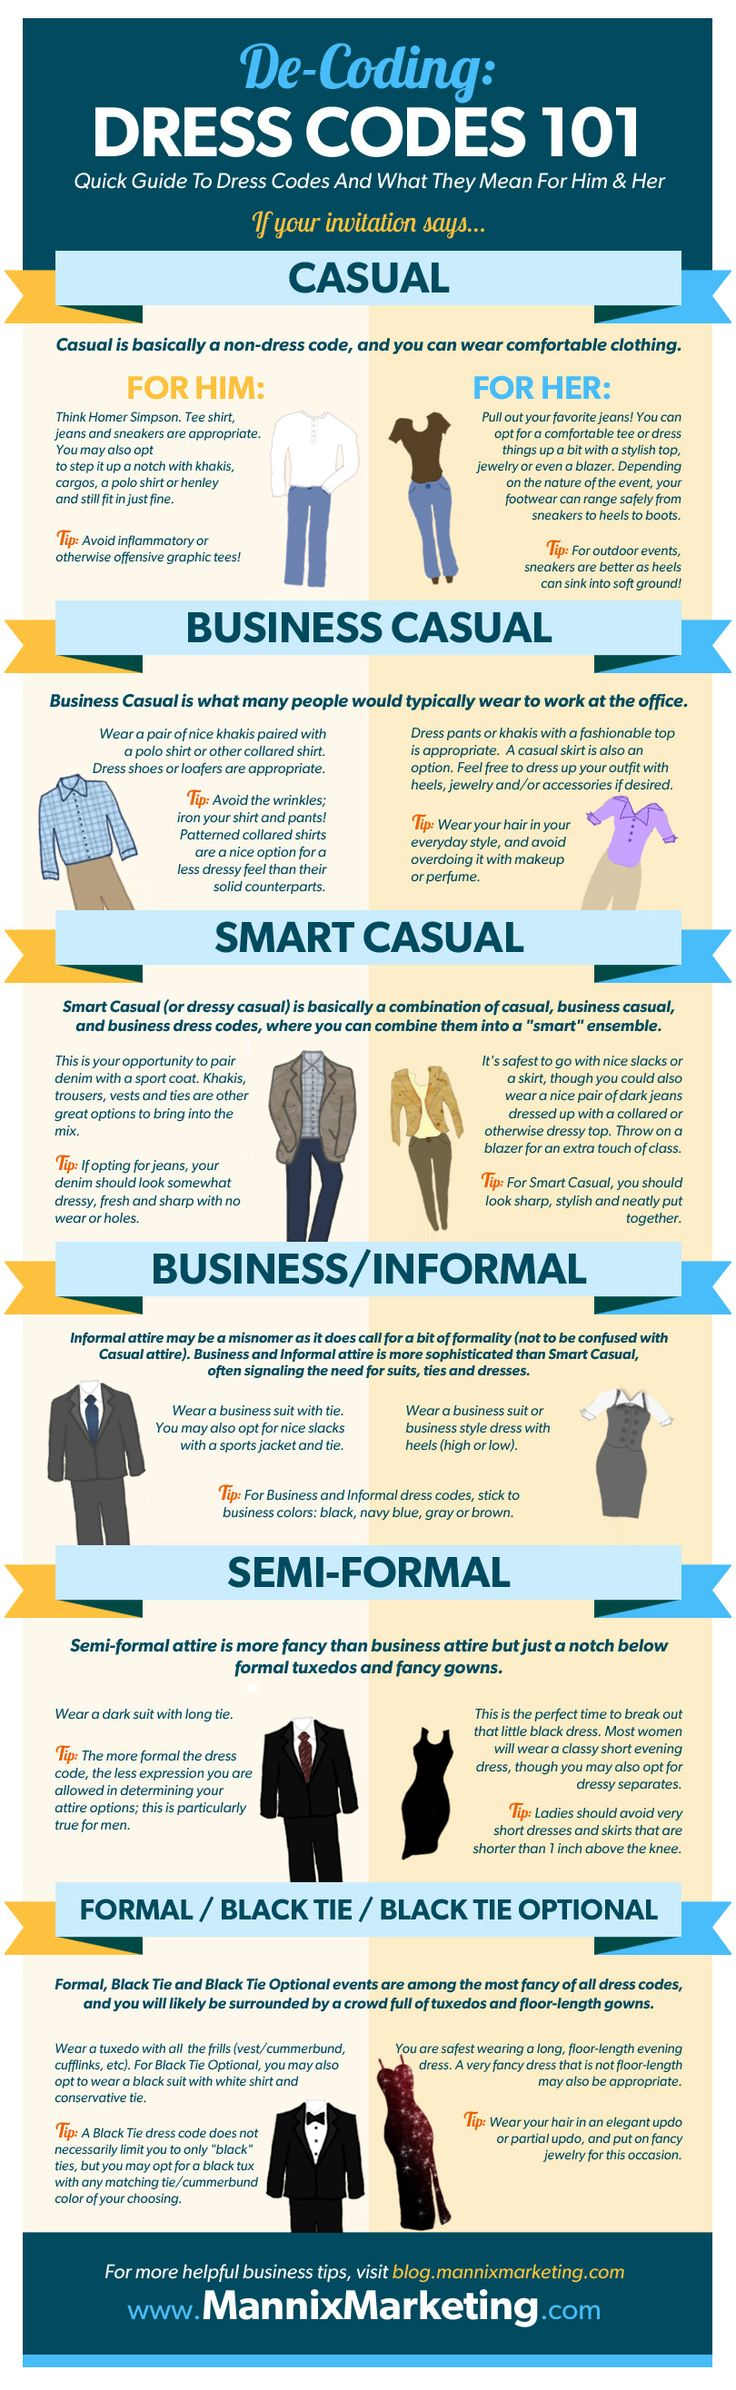 1438877606-business-casual-infographic-dress-codes.jpg 810×2,631 pixels